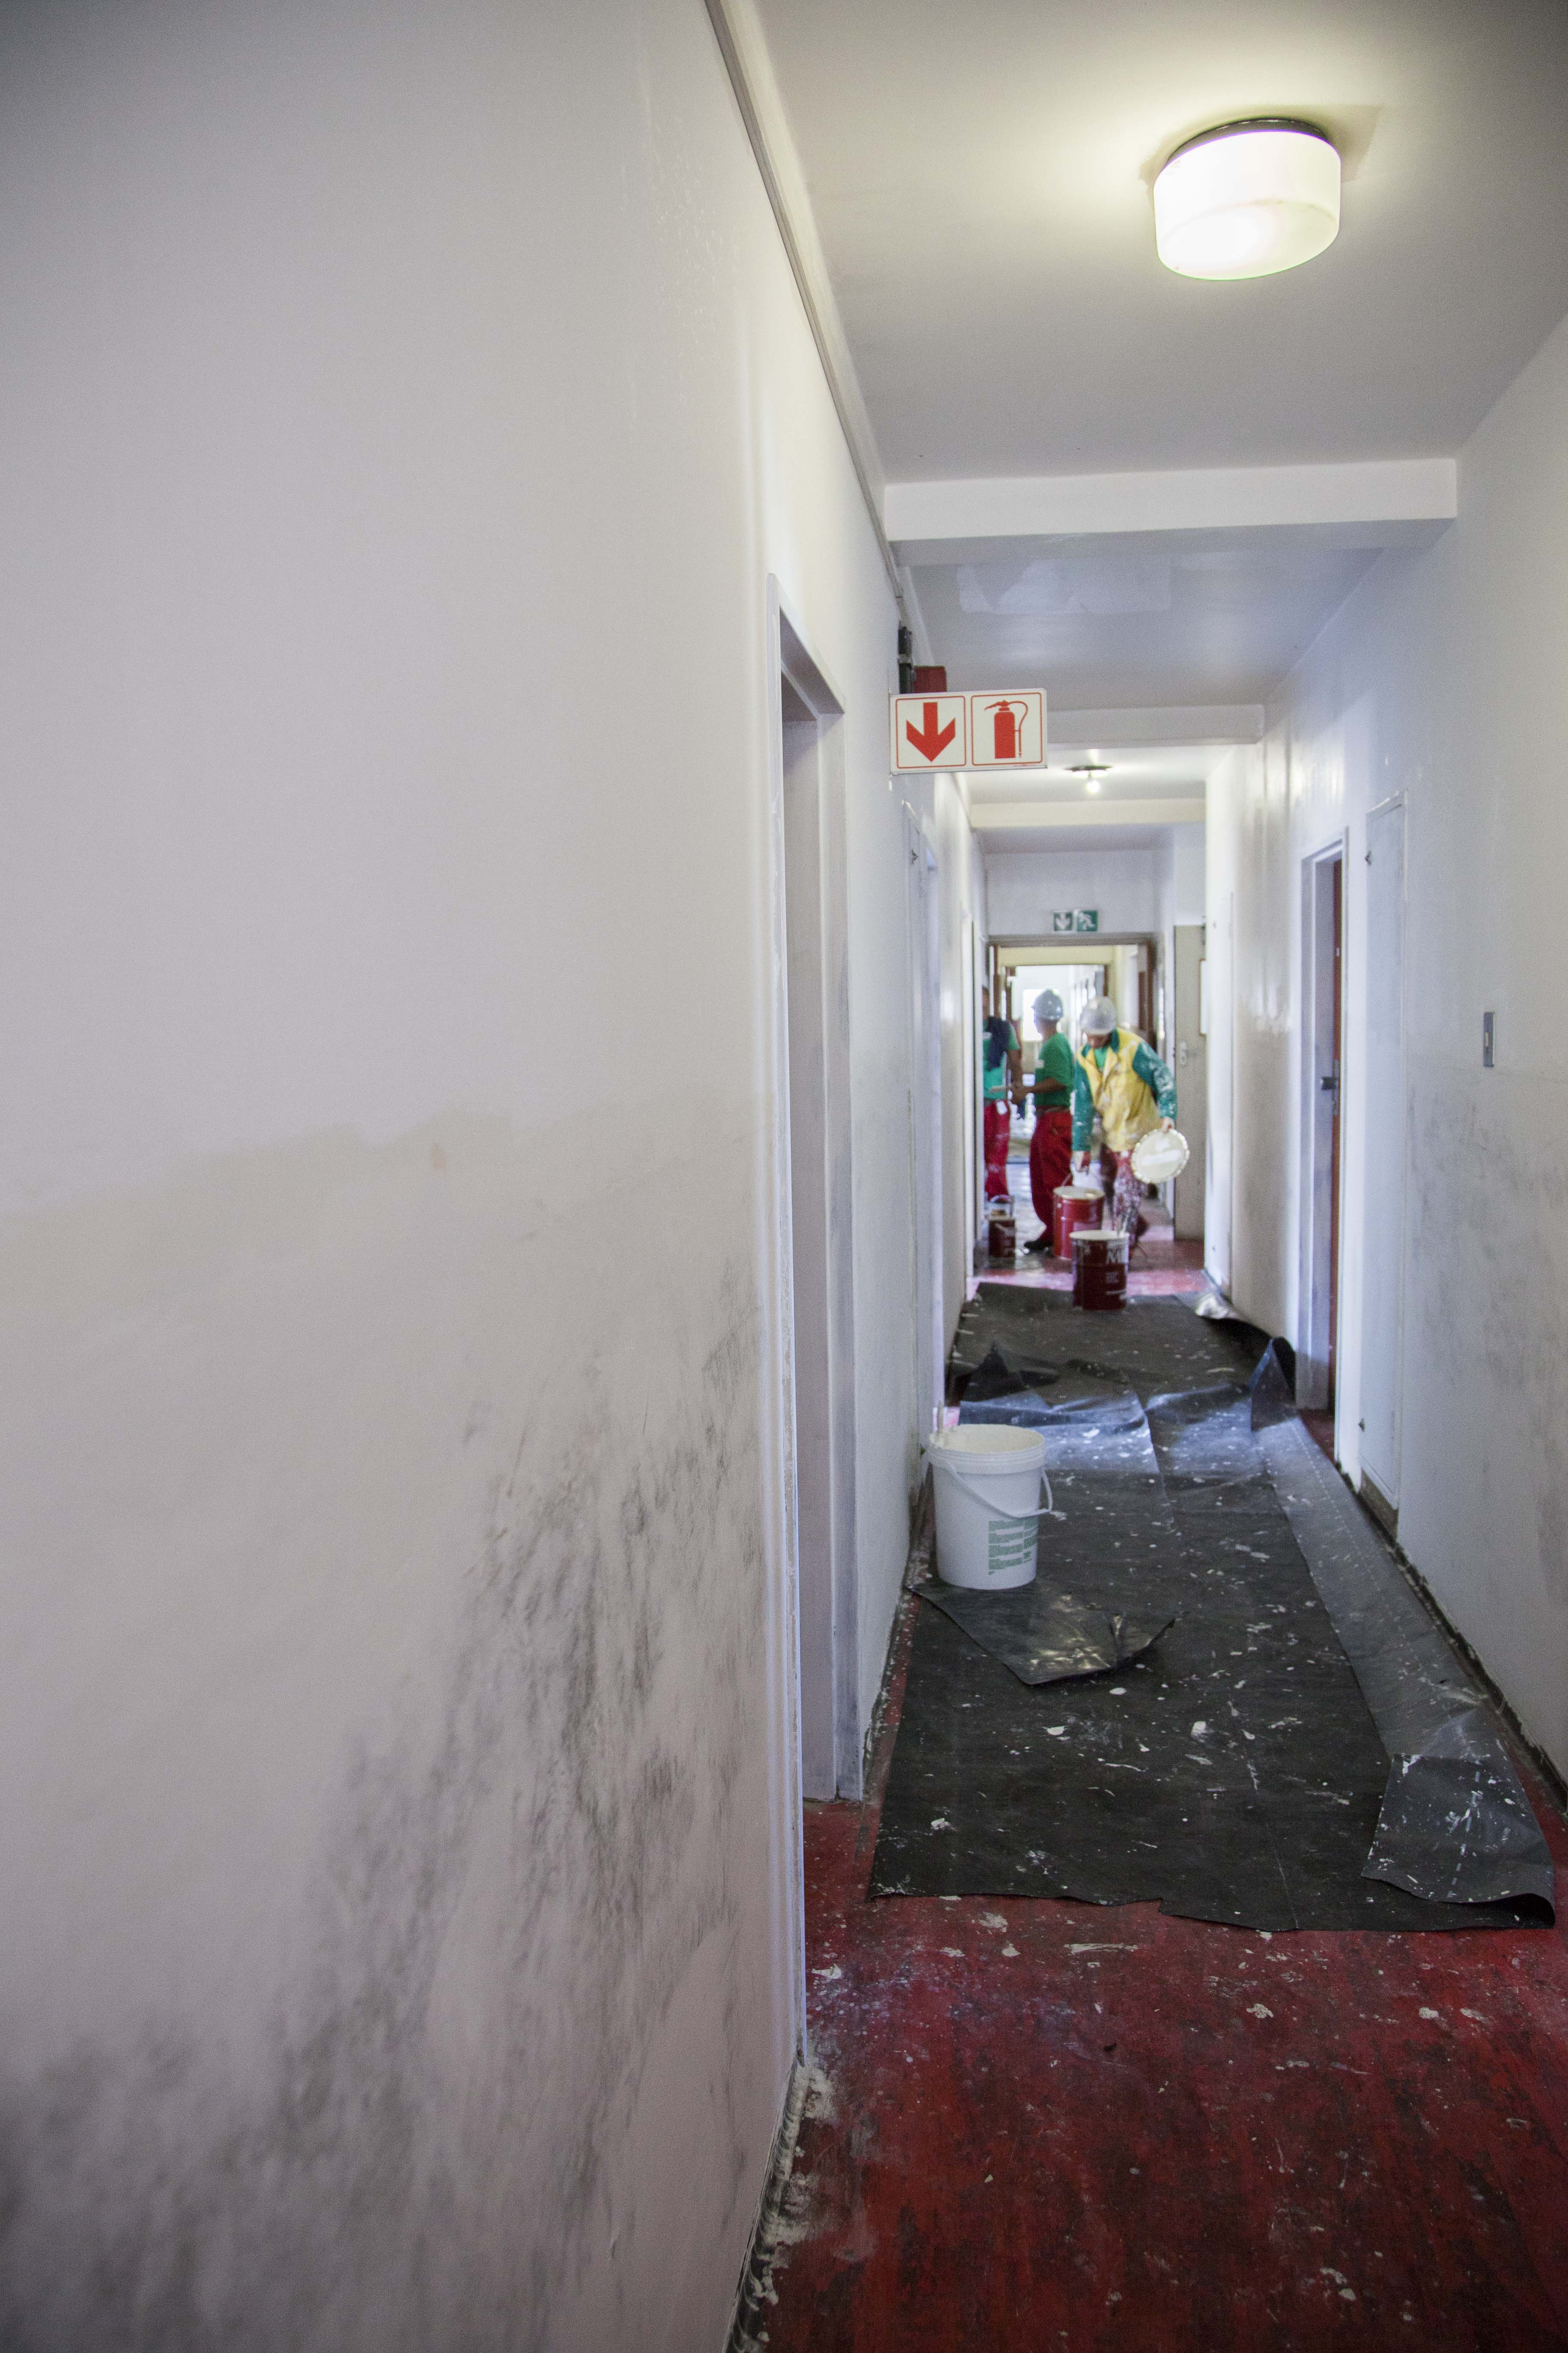 Internal building refurbishment, redecoration, painting from building refurbishment and roofing contractor, Indawo